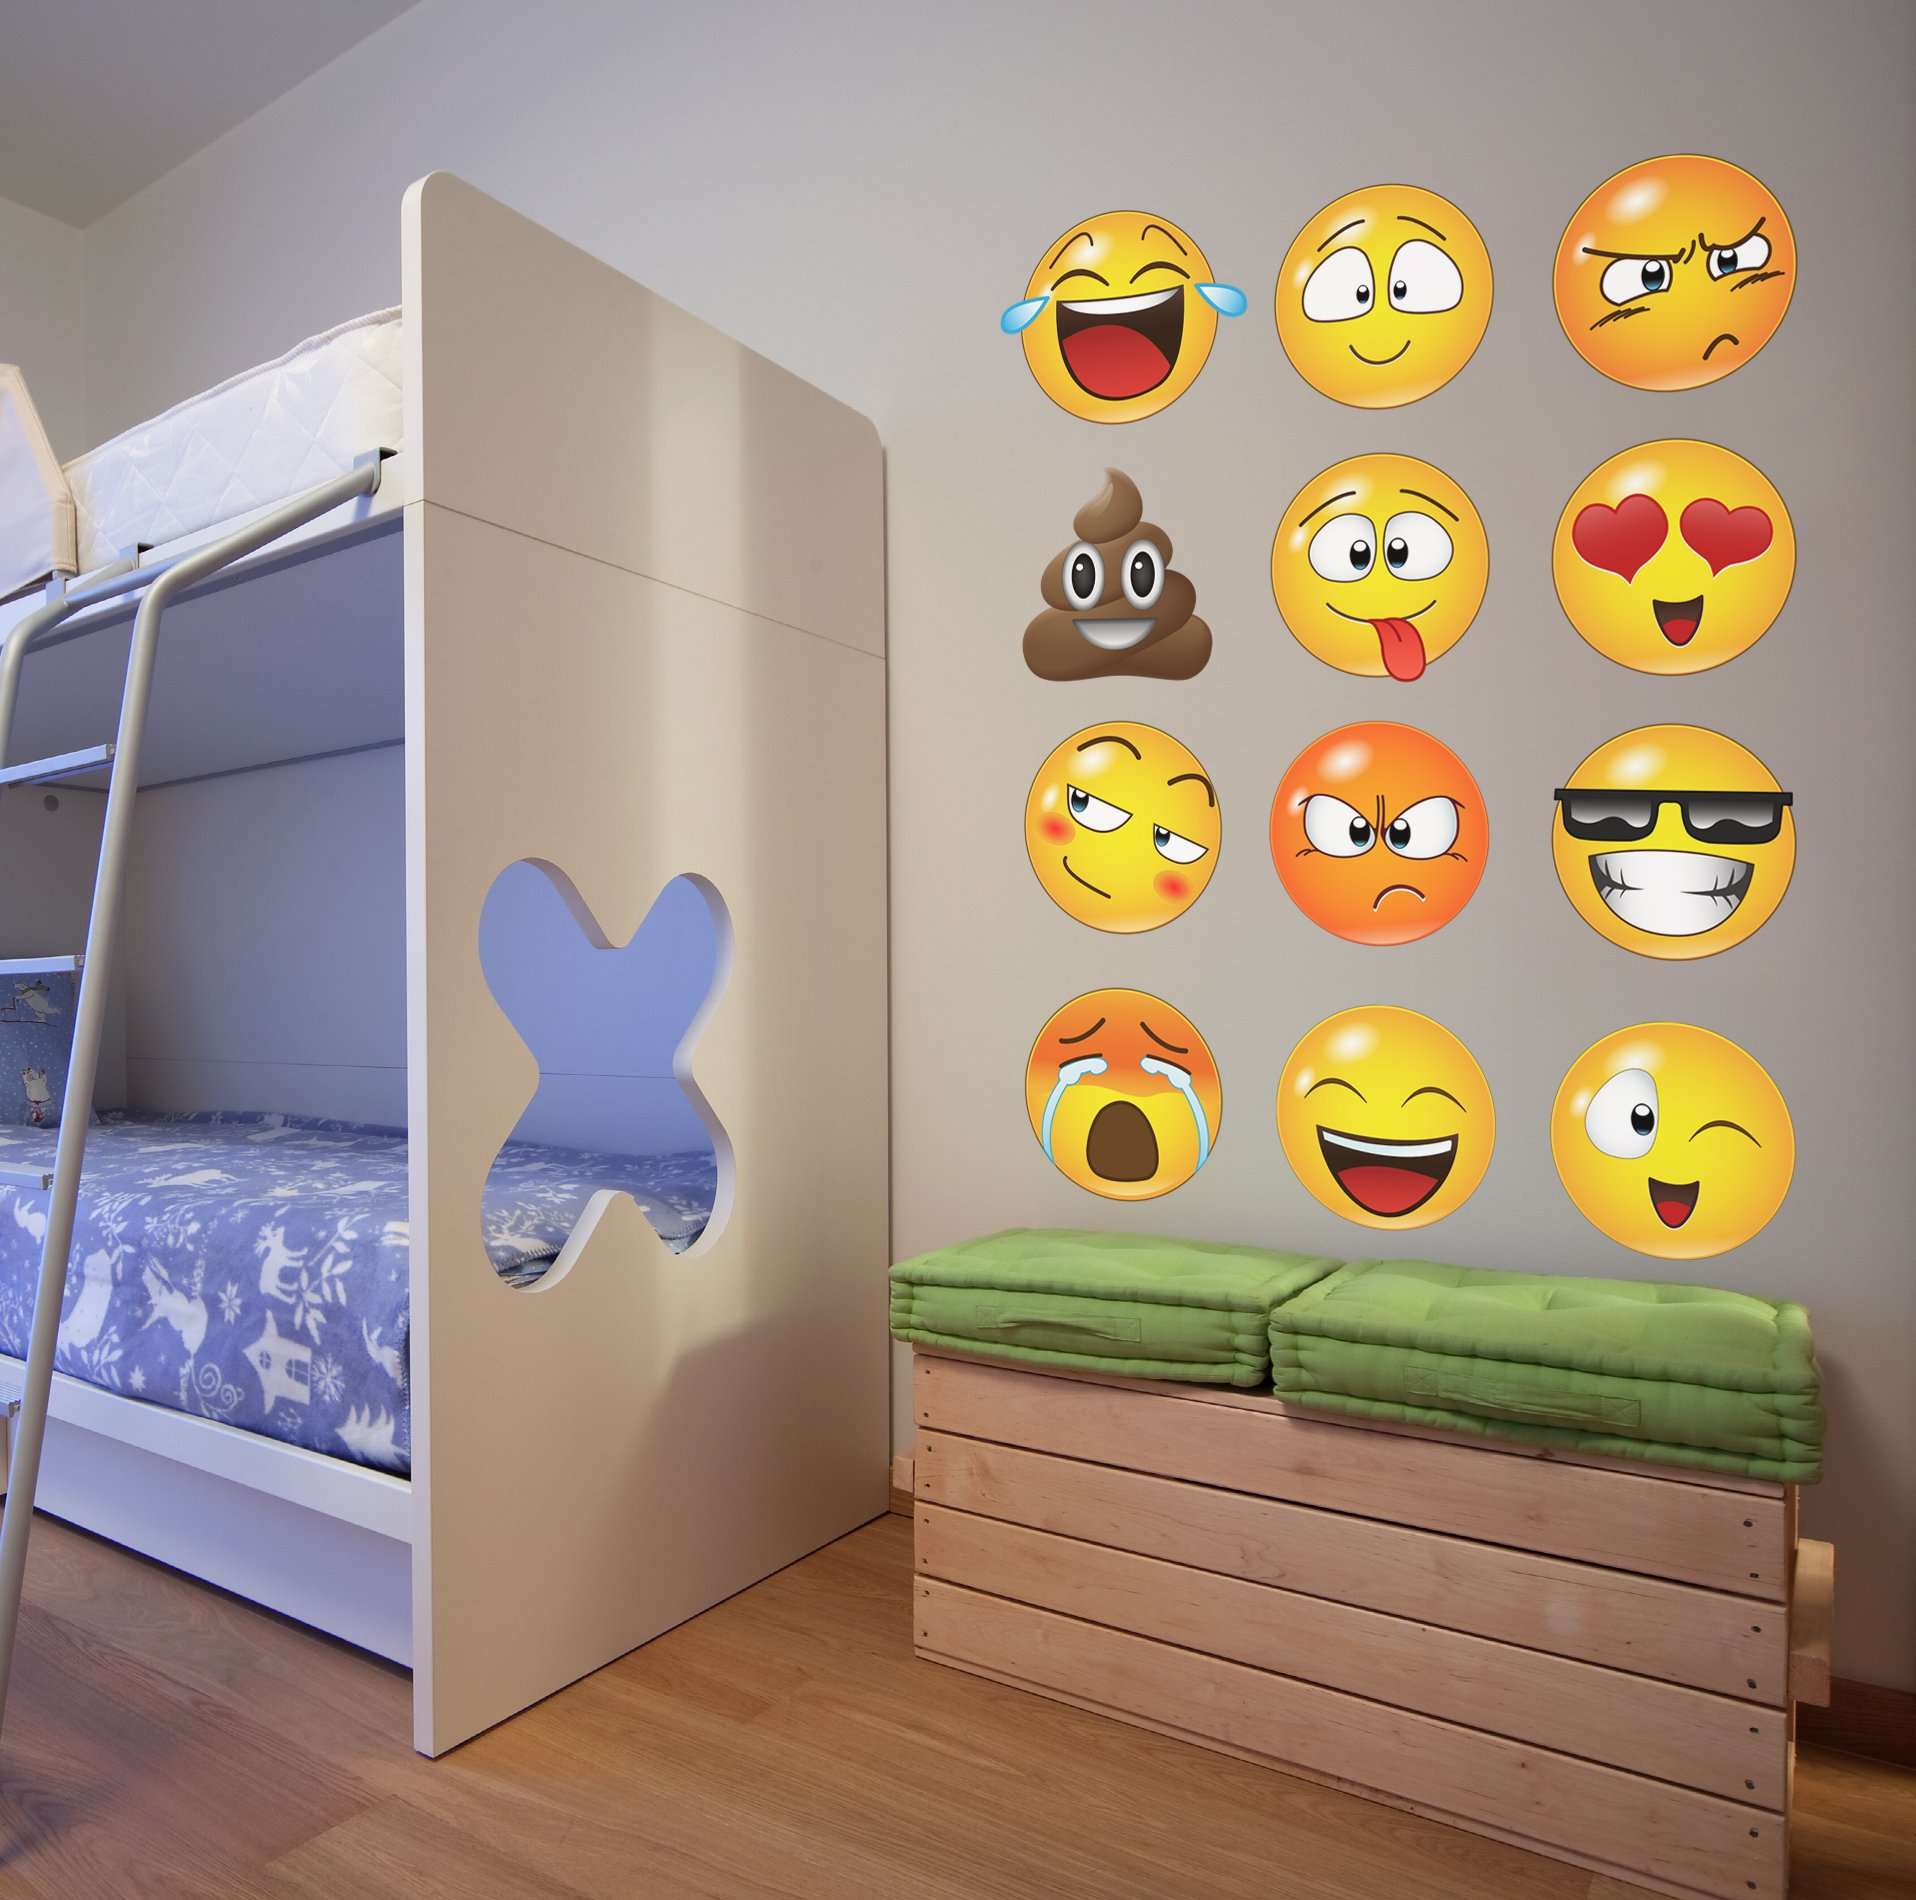 12 Large Emoji Wall Decal Faces Sticker #6052s 10in X 10in Each by Stickerbrand (Image #6)